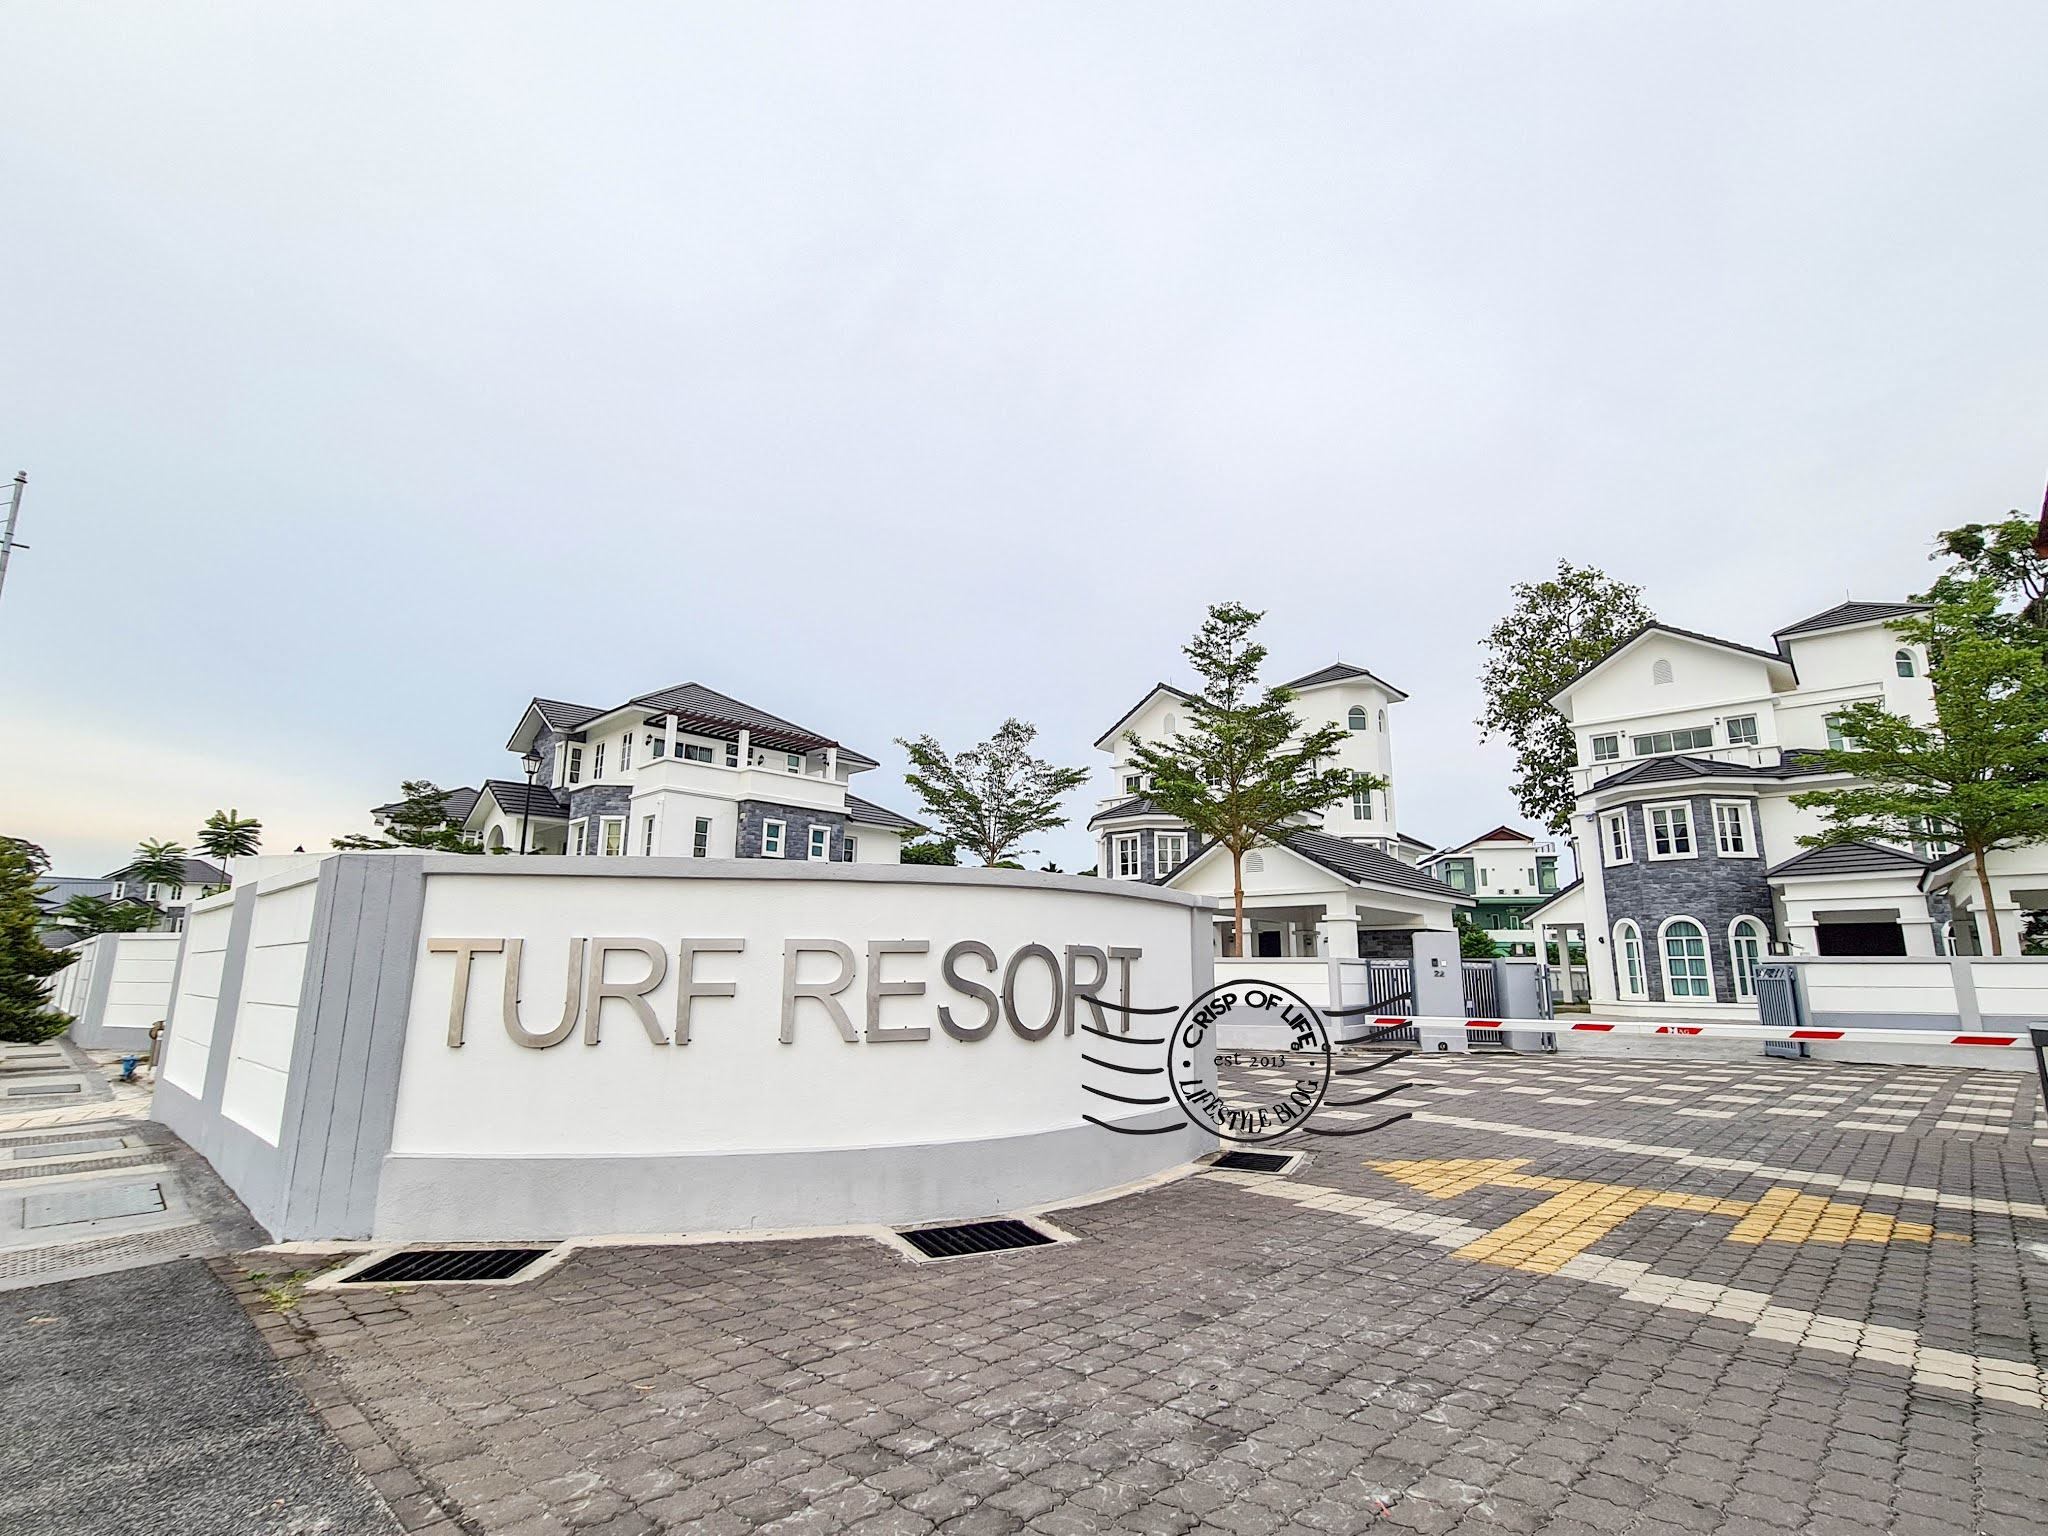 Turf Resort Penang - The Luxury European Castle Inspired Bungalow Homestay